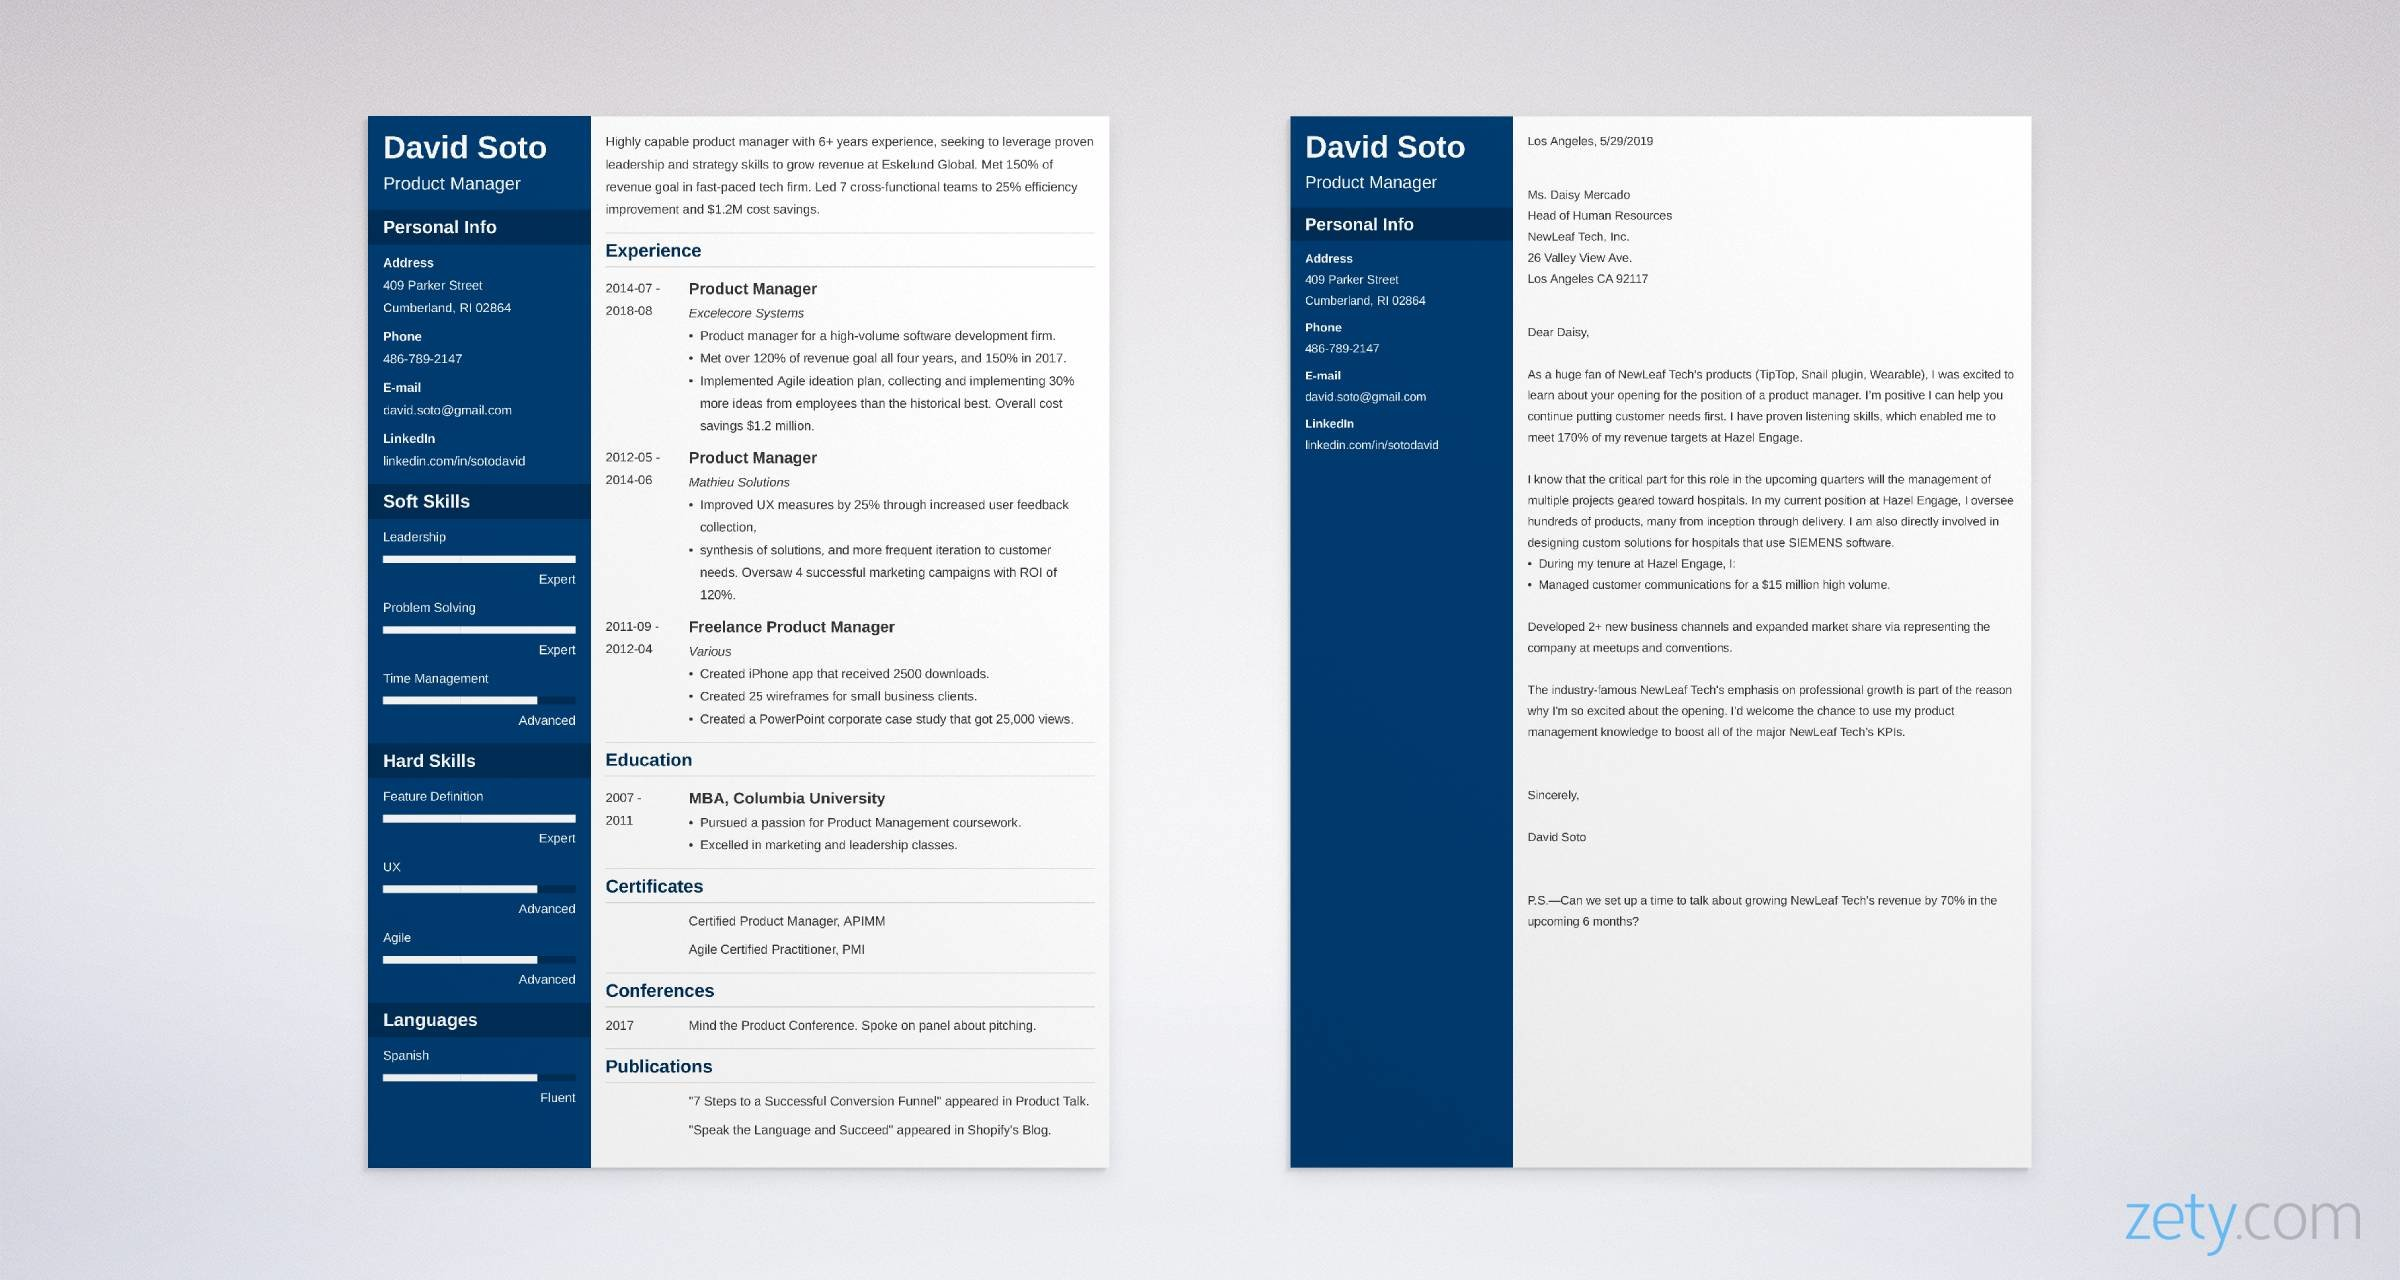 Product Manager Cover Letter Samples Format And 10 Tips